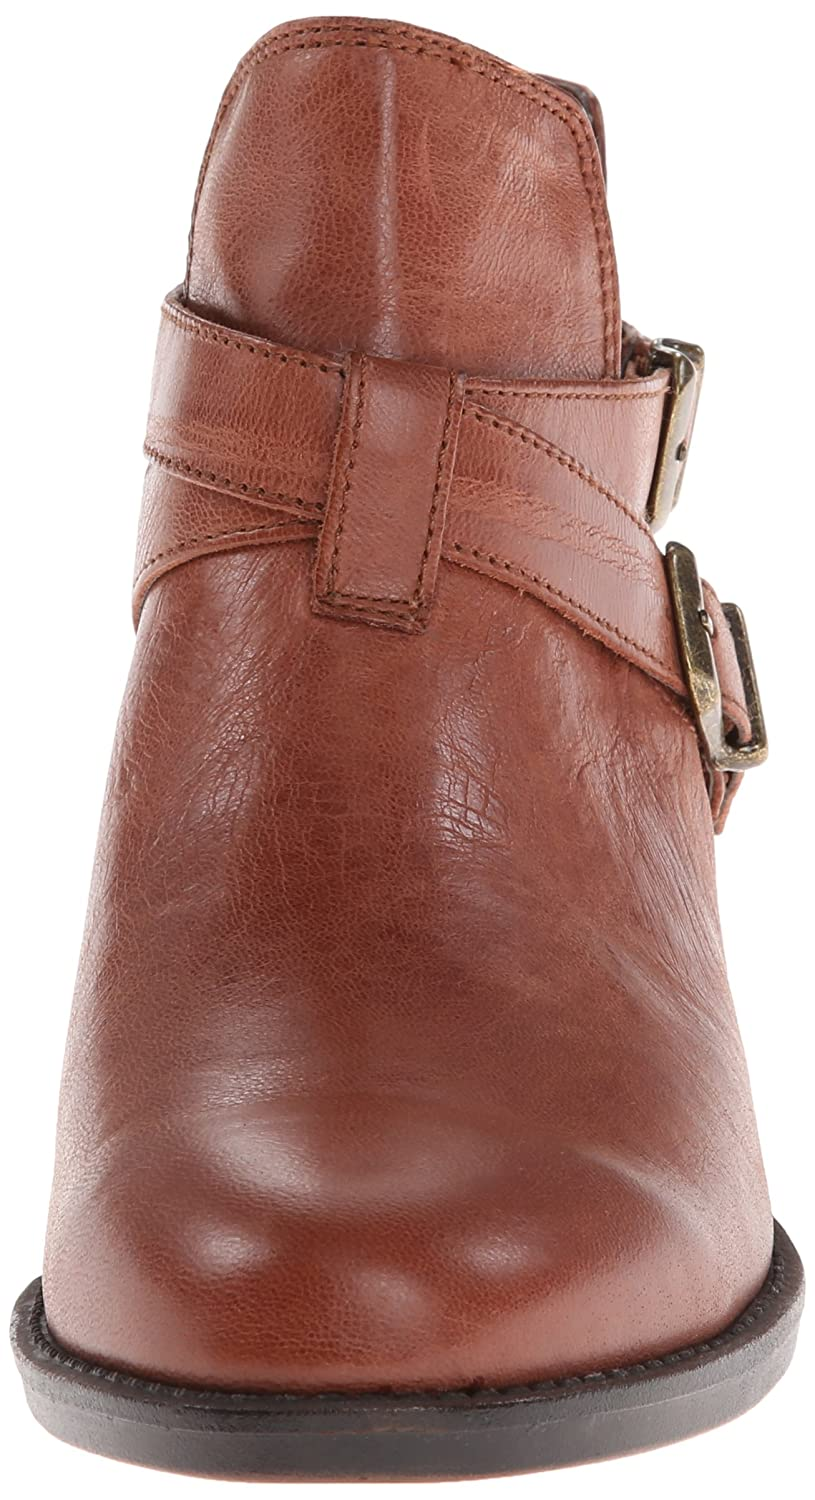 Bella Vita Damens's Raine Leder Boot Dark Tan Leder Raine 340c77